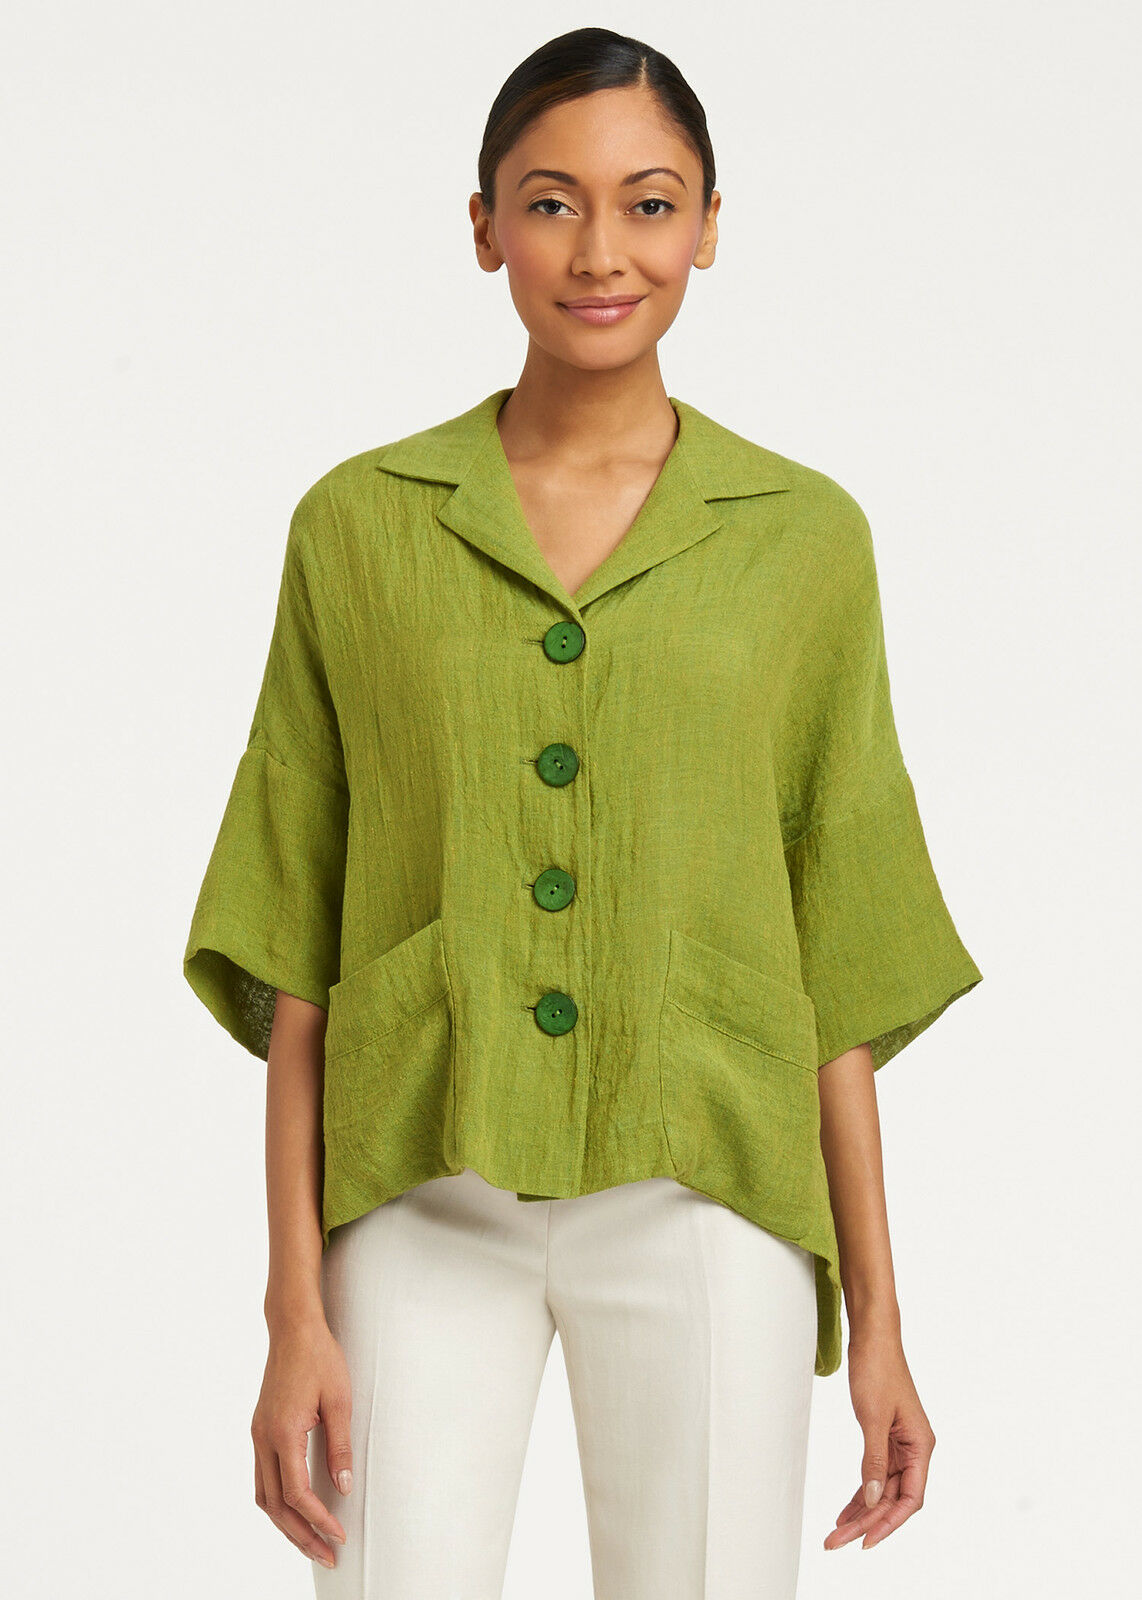 NWT Lafayette 148 New York WOMEN Mojave Linen Cam Topper SHIRT SHORT SLEEVE M L